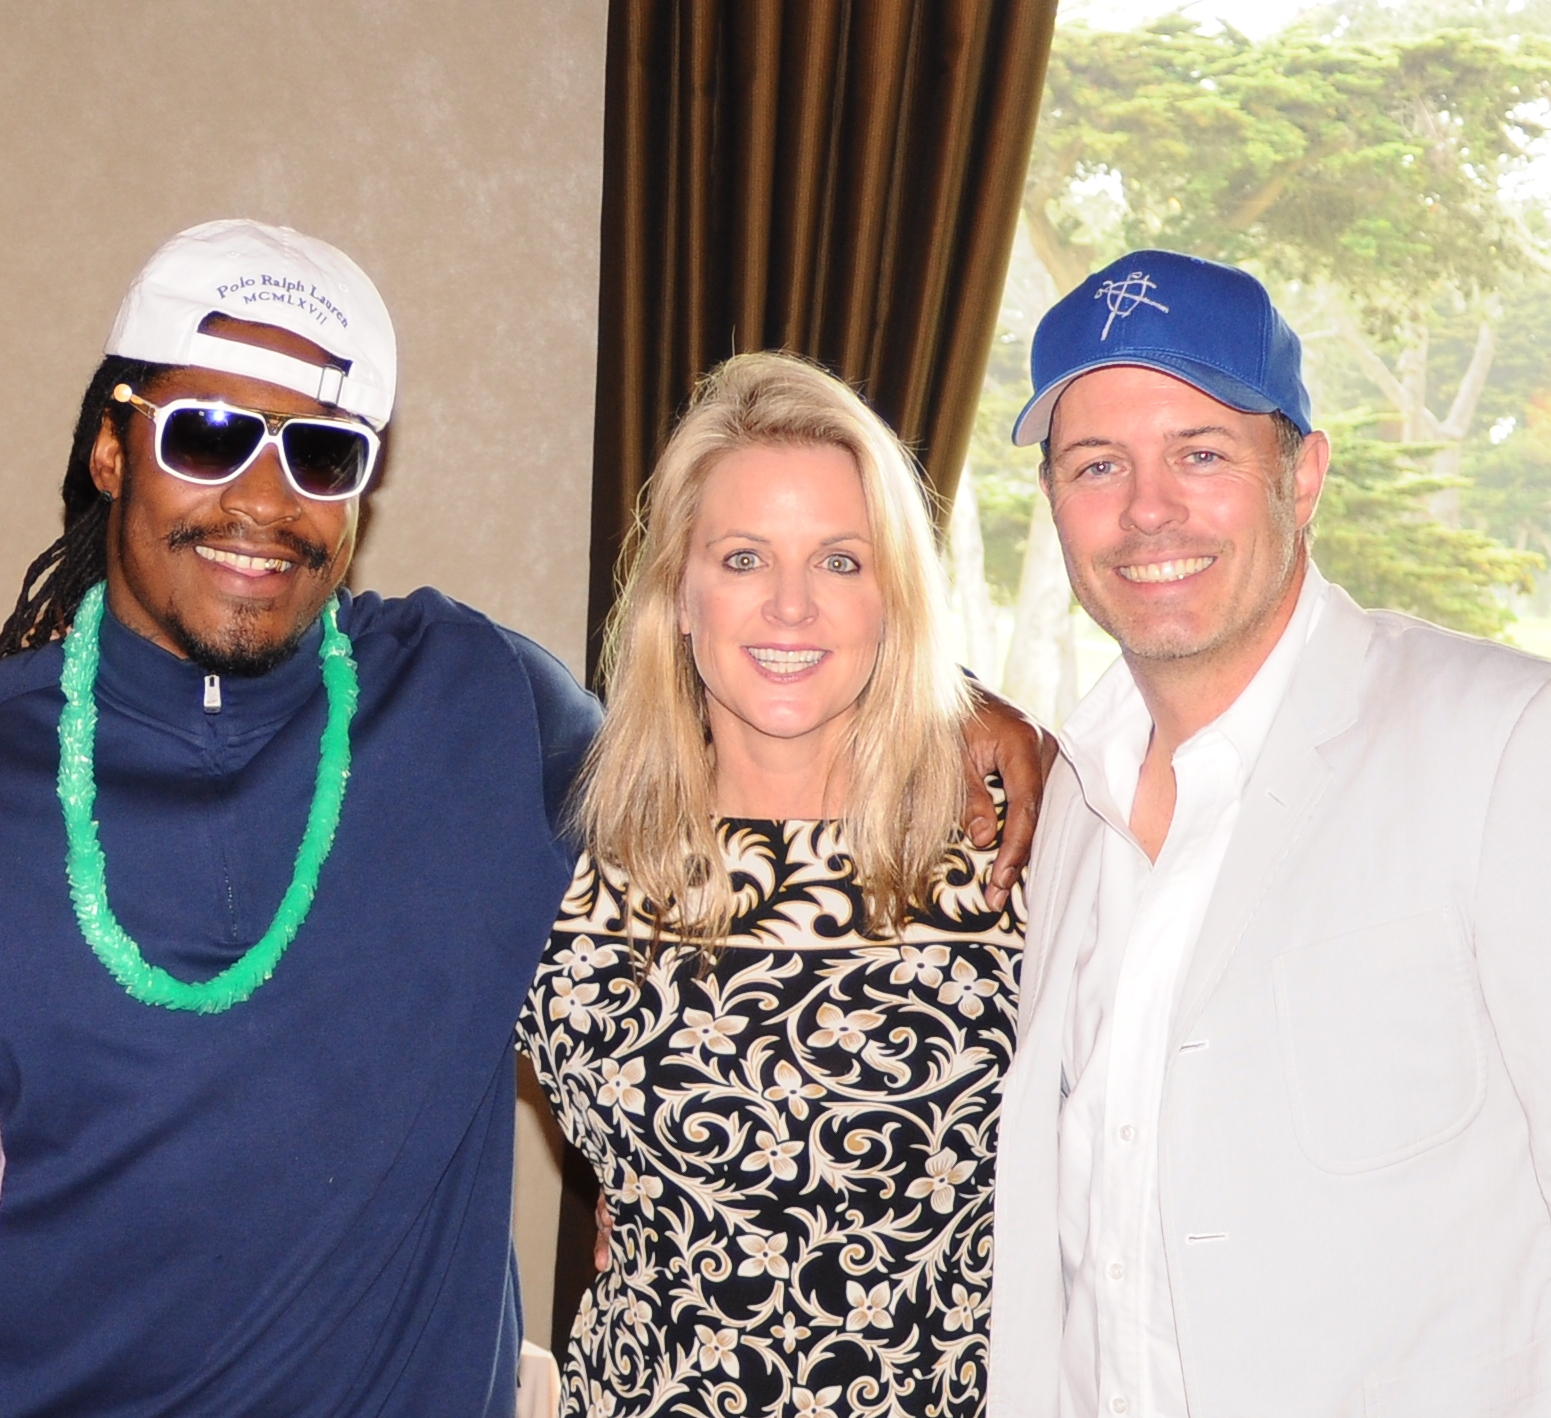 Marshawn Lynch of the Seattle Seahawks with Hilary and Geoff at the PlumpJack LINK Classic